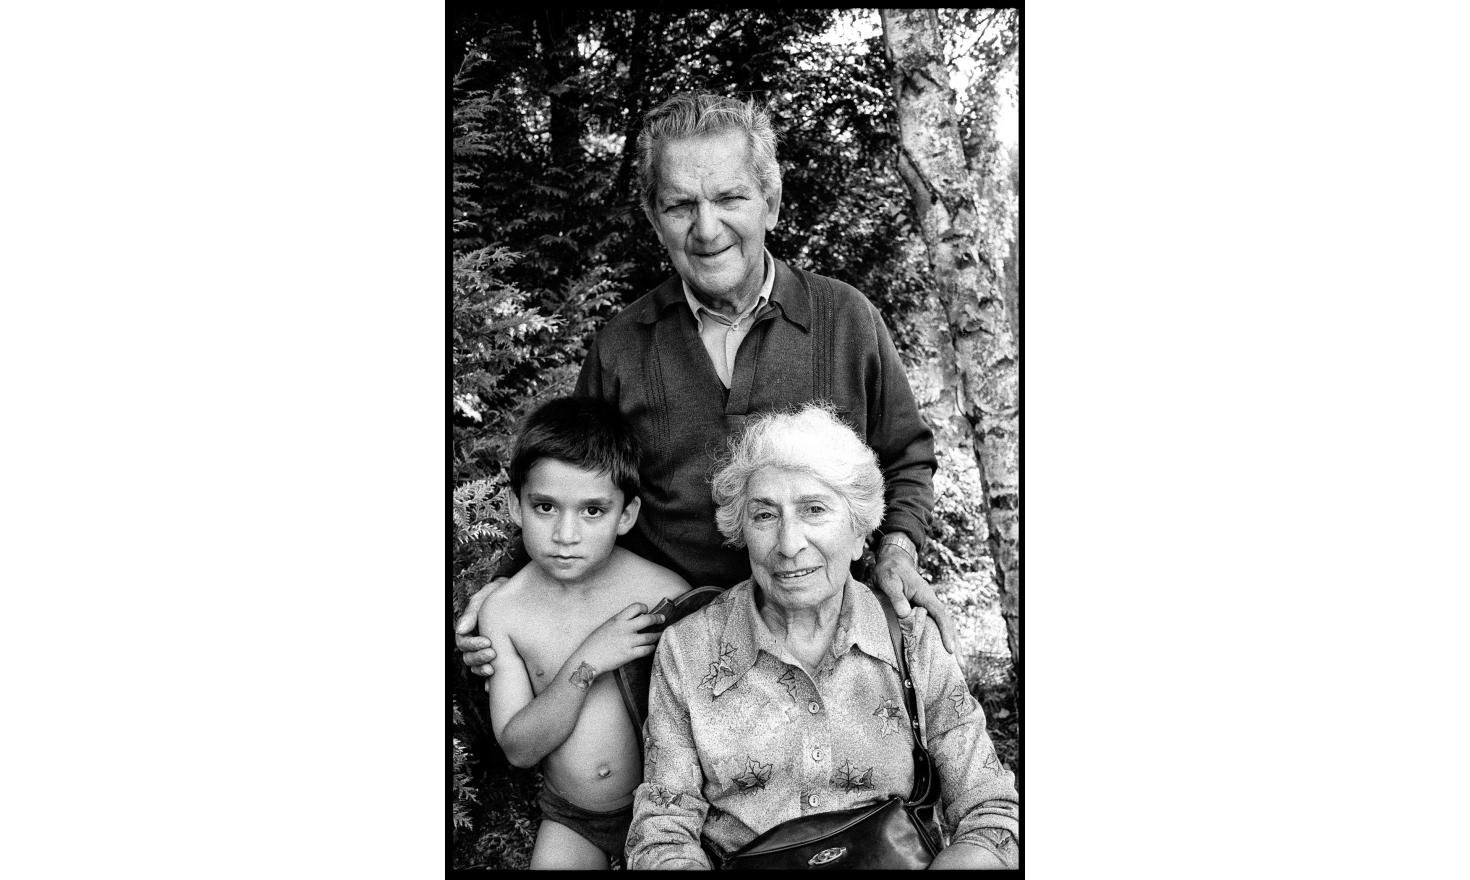 My son Leo with my parents. This is one of the few photographs of the three of them. Oddly, my parents seem serene. My mother is sinking more and more in the disease of forgetfulness. Igny, 1998.